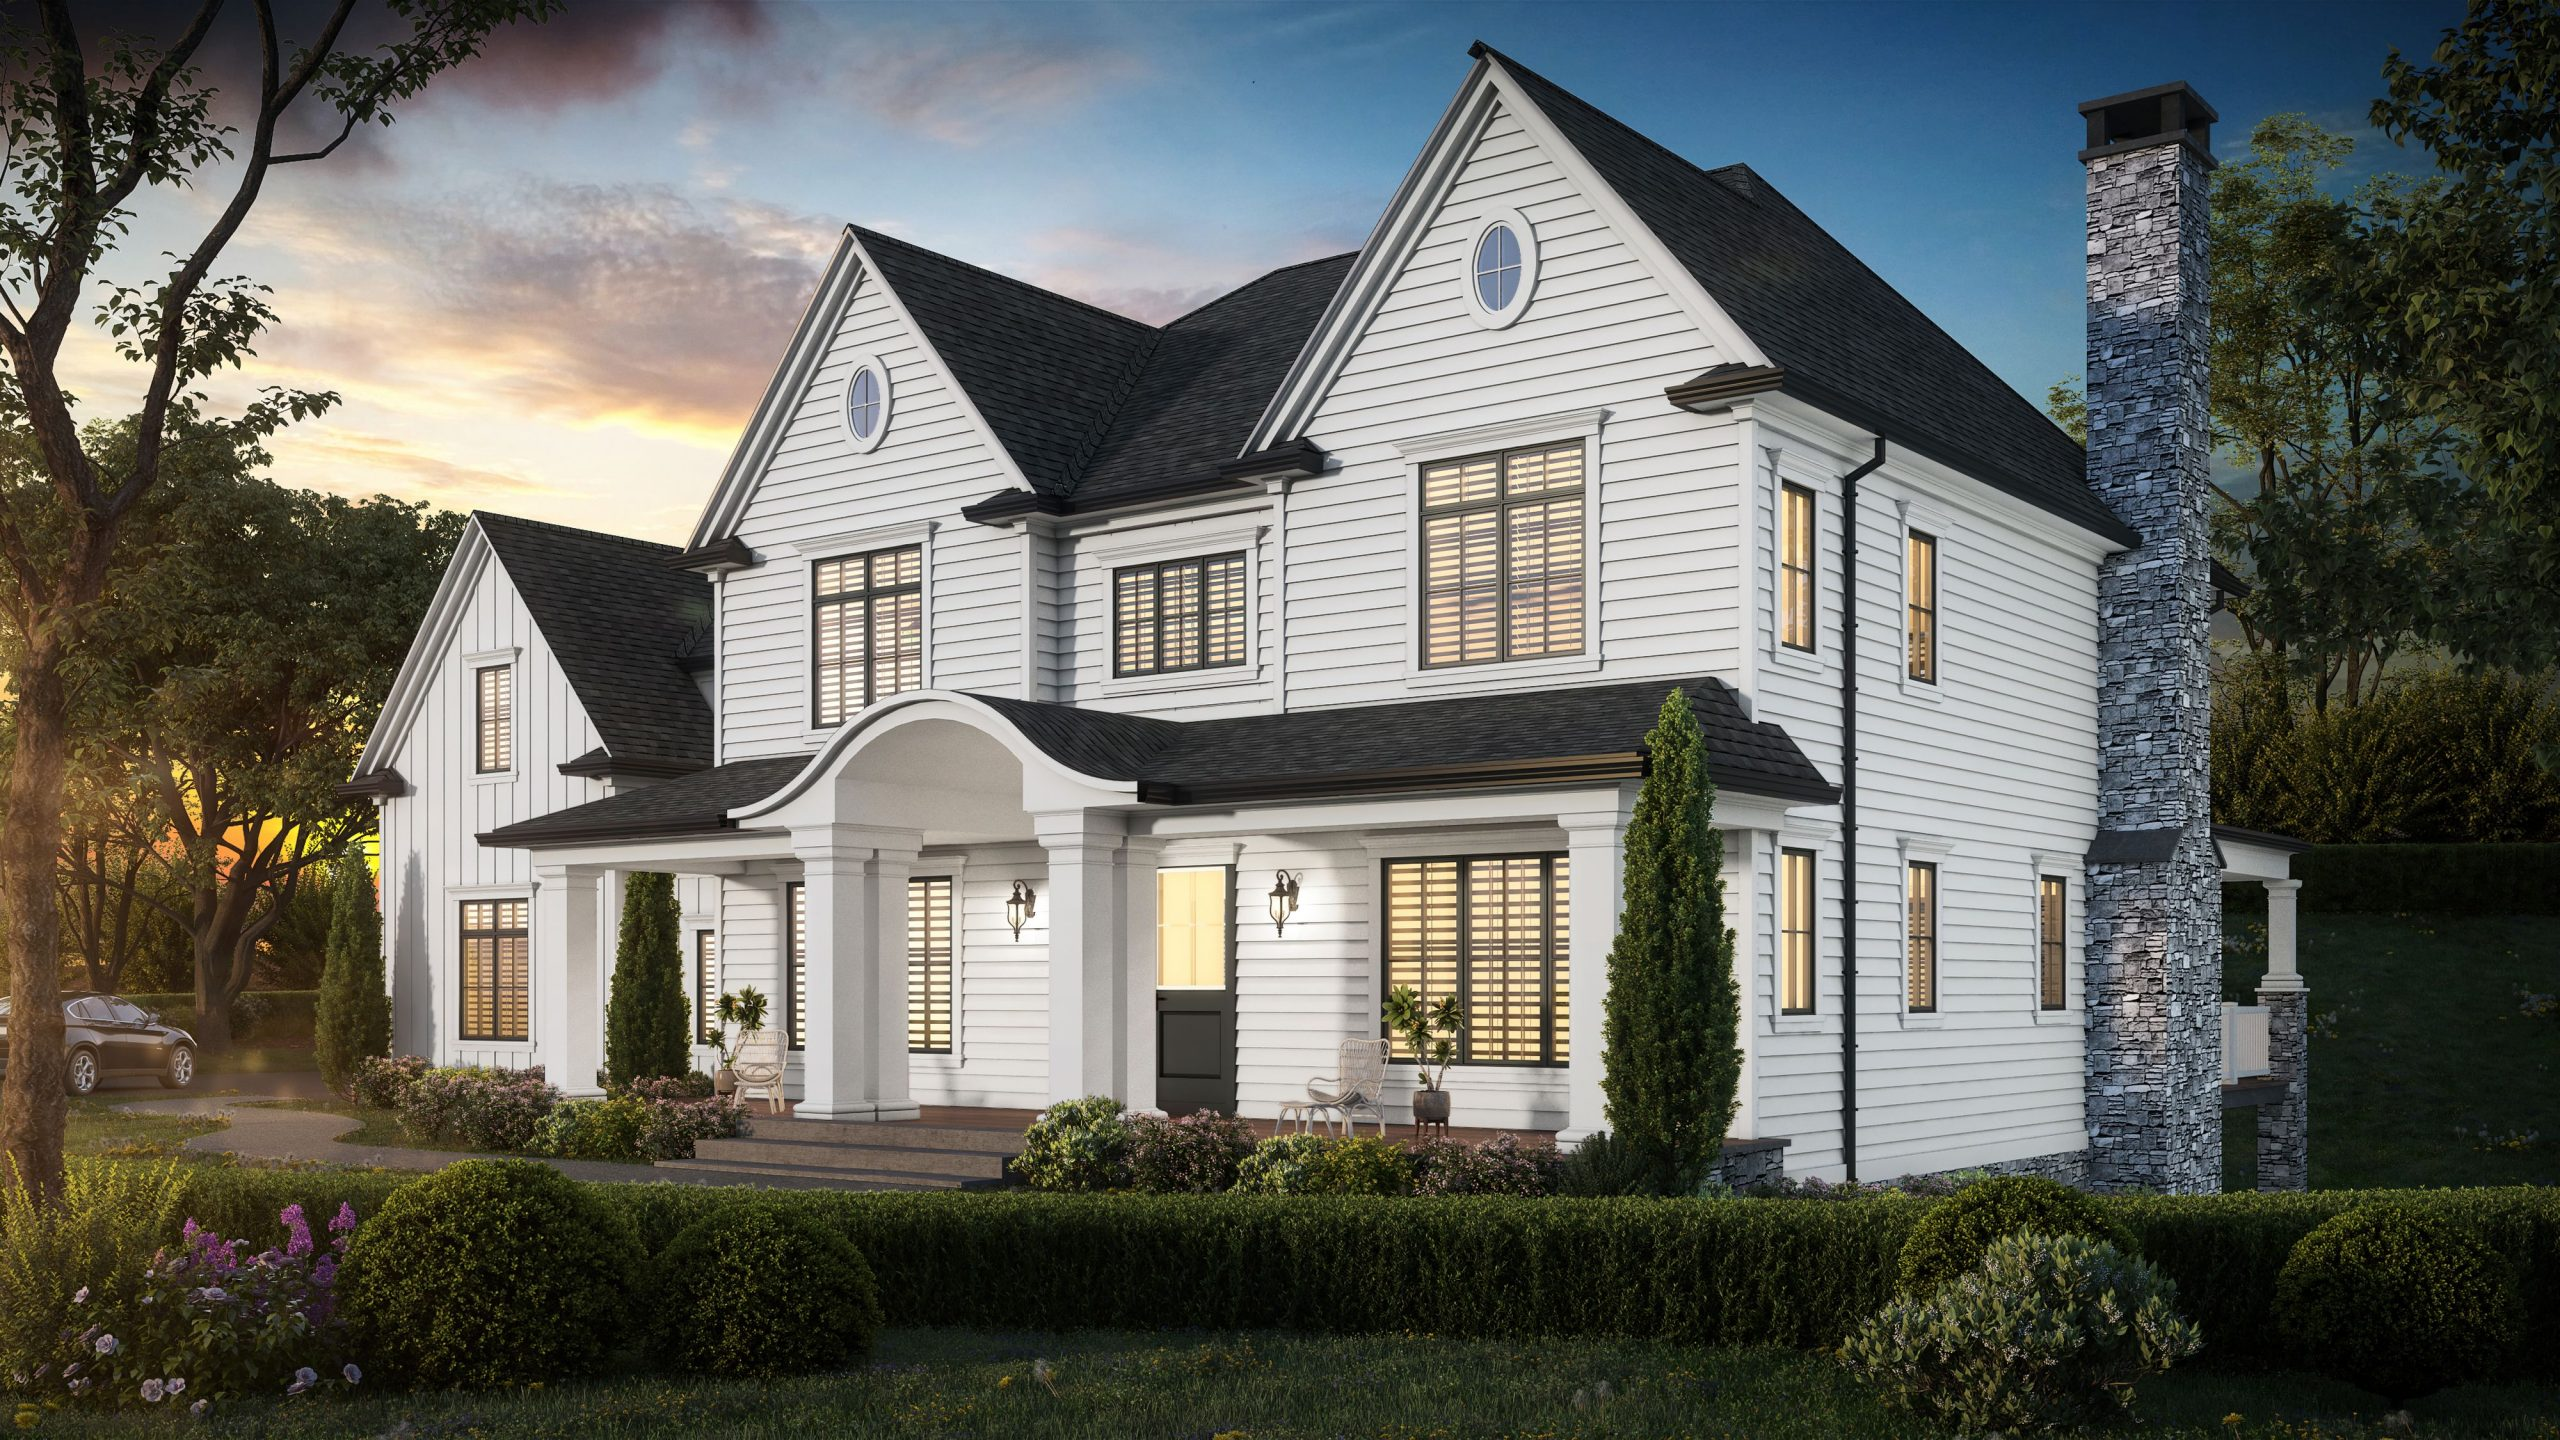 5 Wyndam Court - 3D model high resolution rendering front view (Different angle)